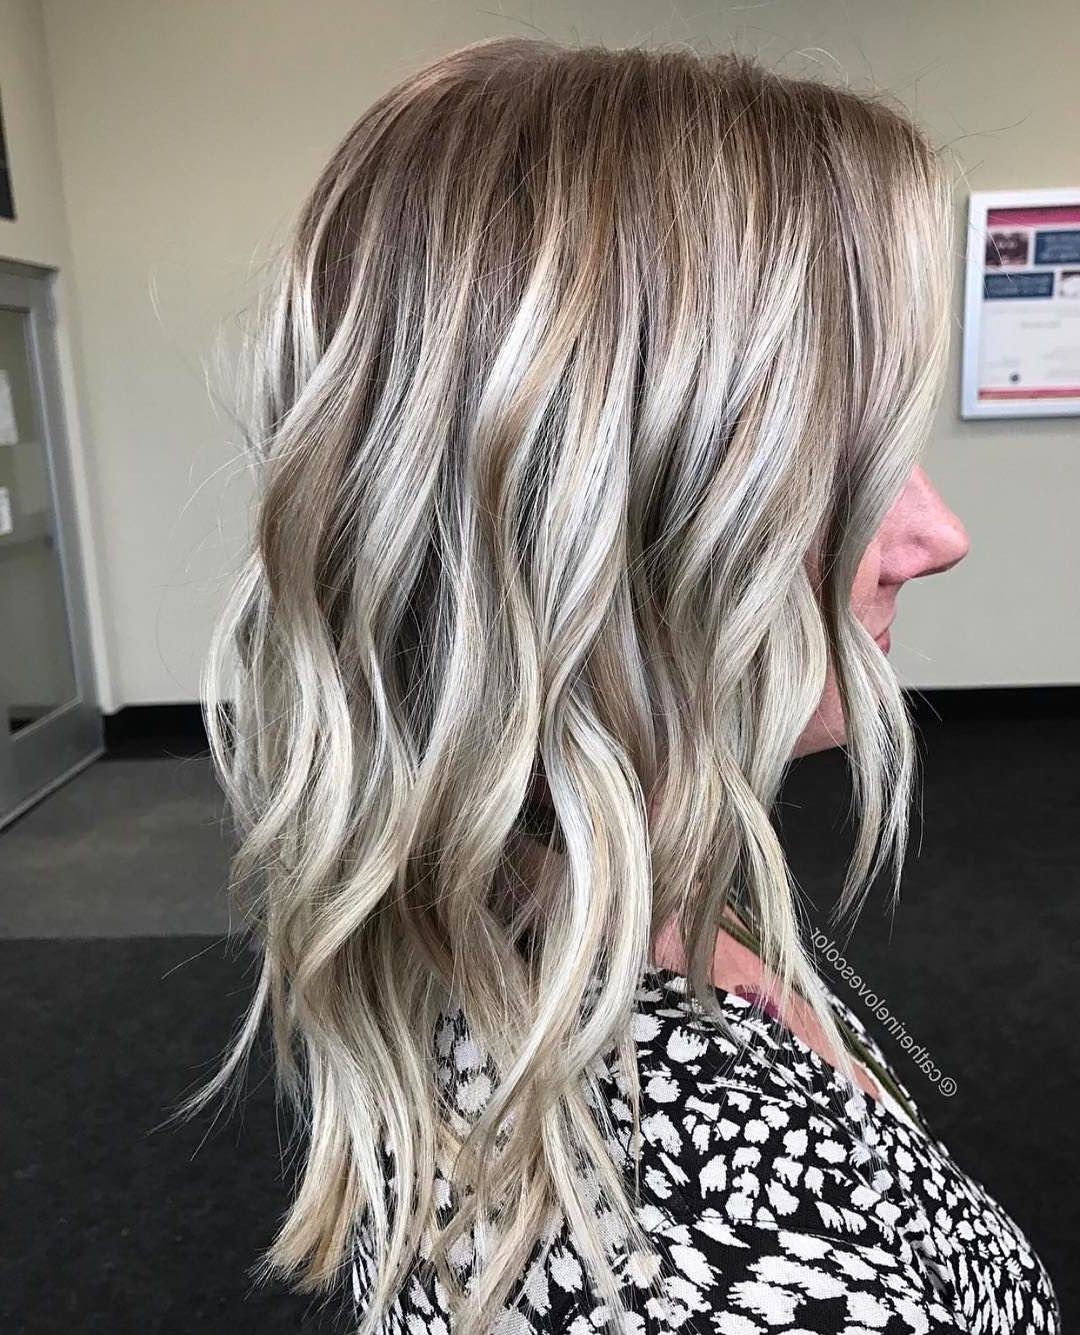 Most Up To Date Ash Blonde Bob Hairstyles With Light Long Layers With 20 Adorable Ash Blonde Hairstyles To Try: Hair Color Ideas (View 12 of 20)